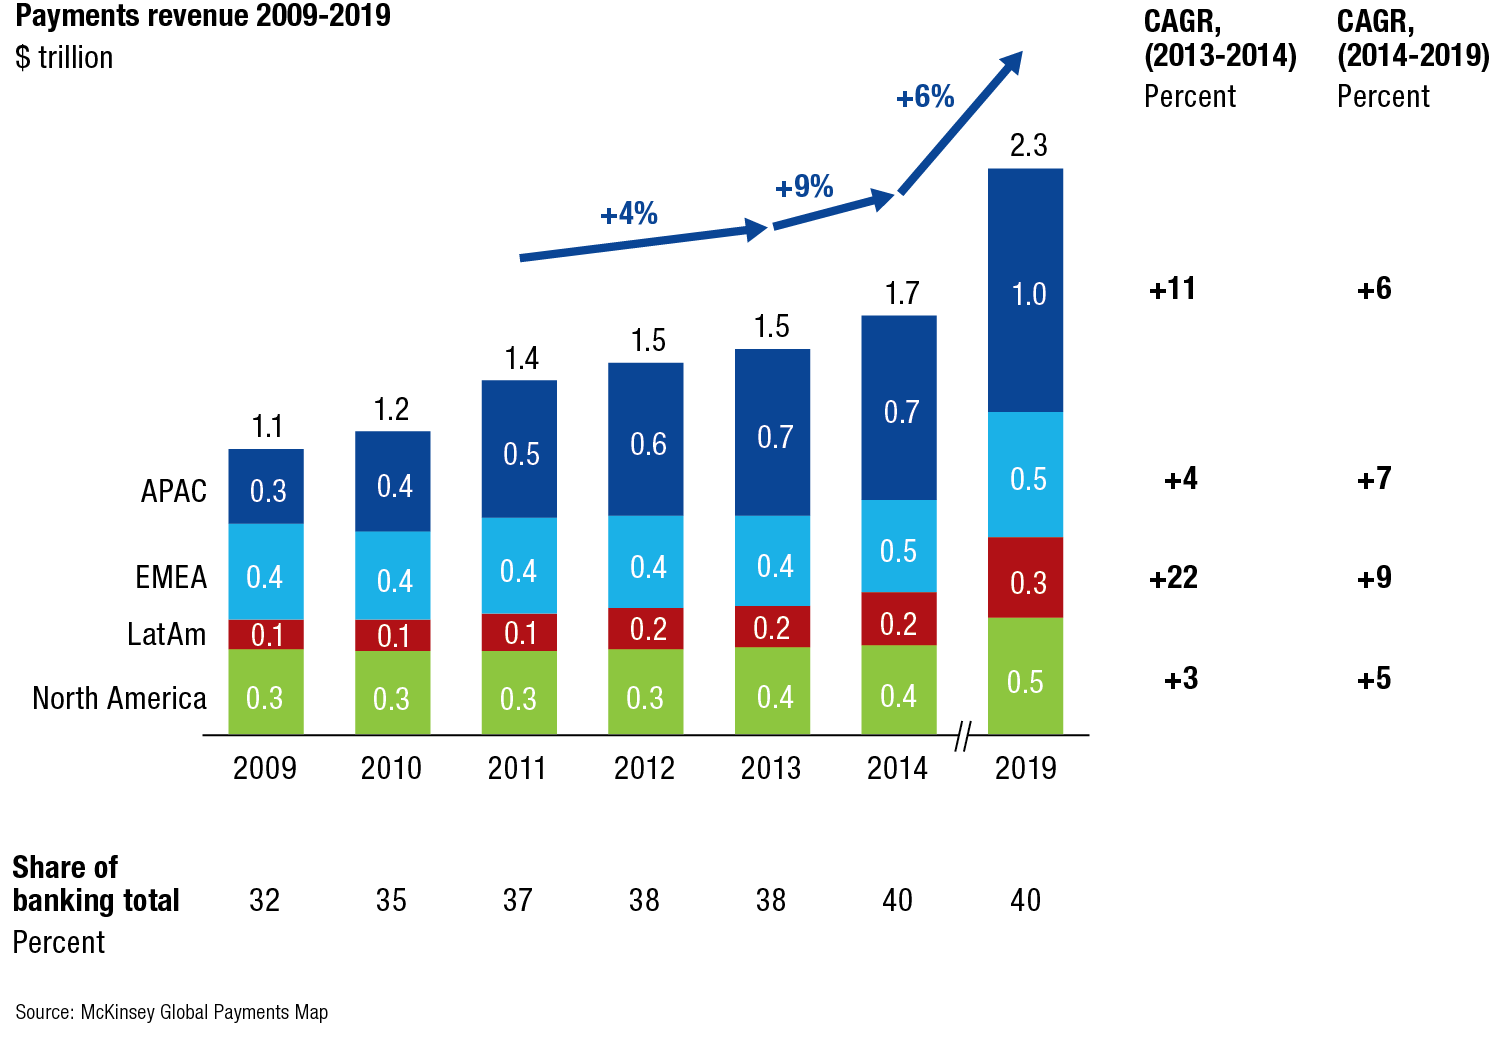 Past and predicted global payments revenue growth (image courtesy of McKinsey Global Payments Map, used with permission)